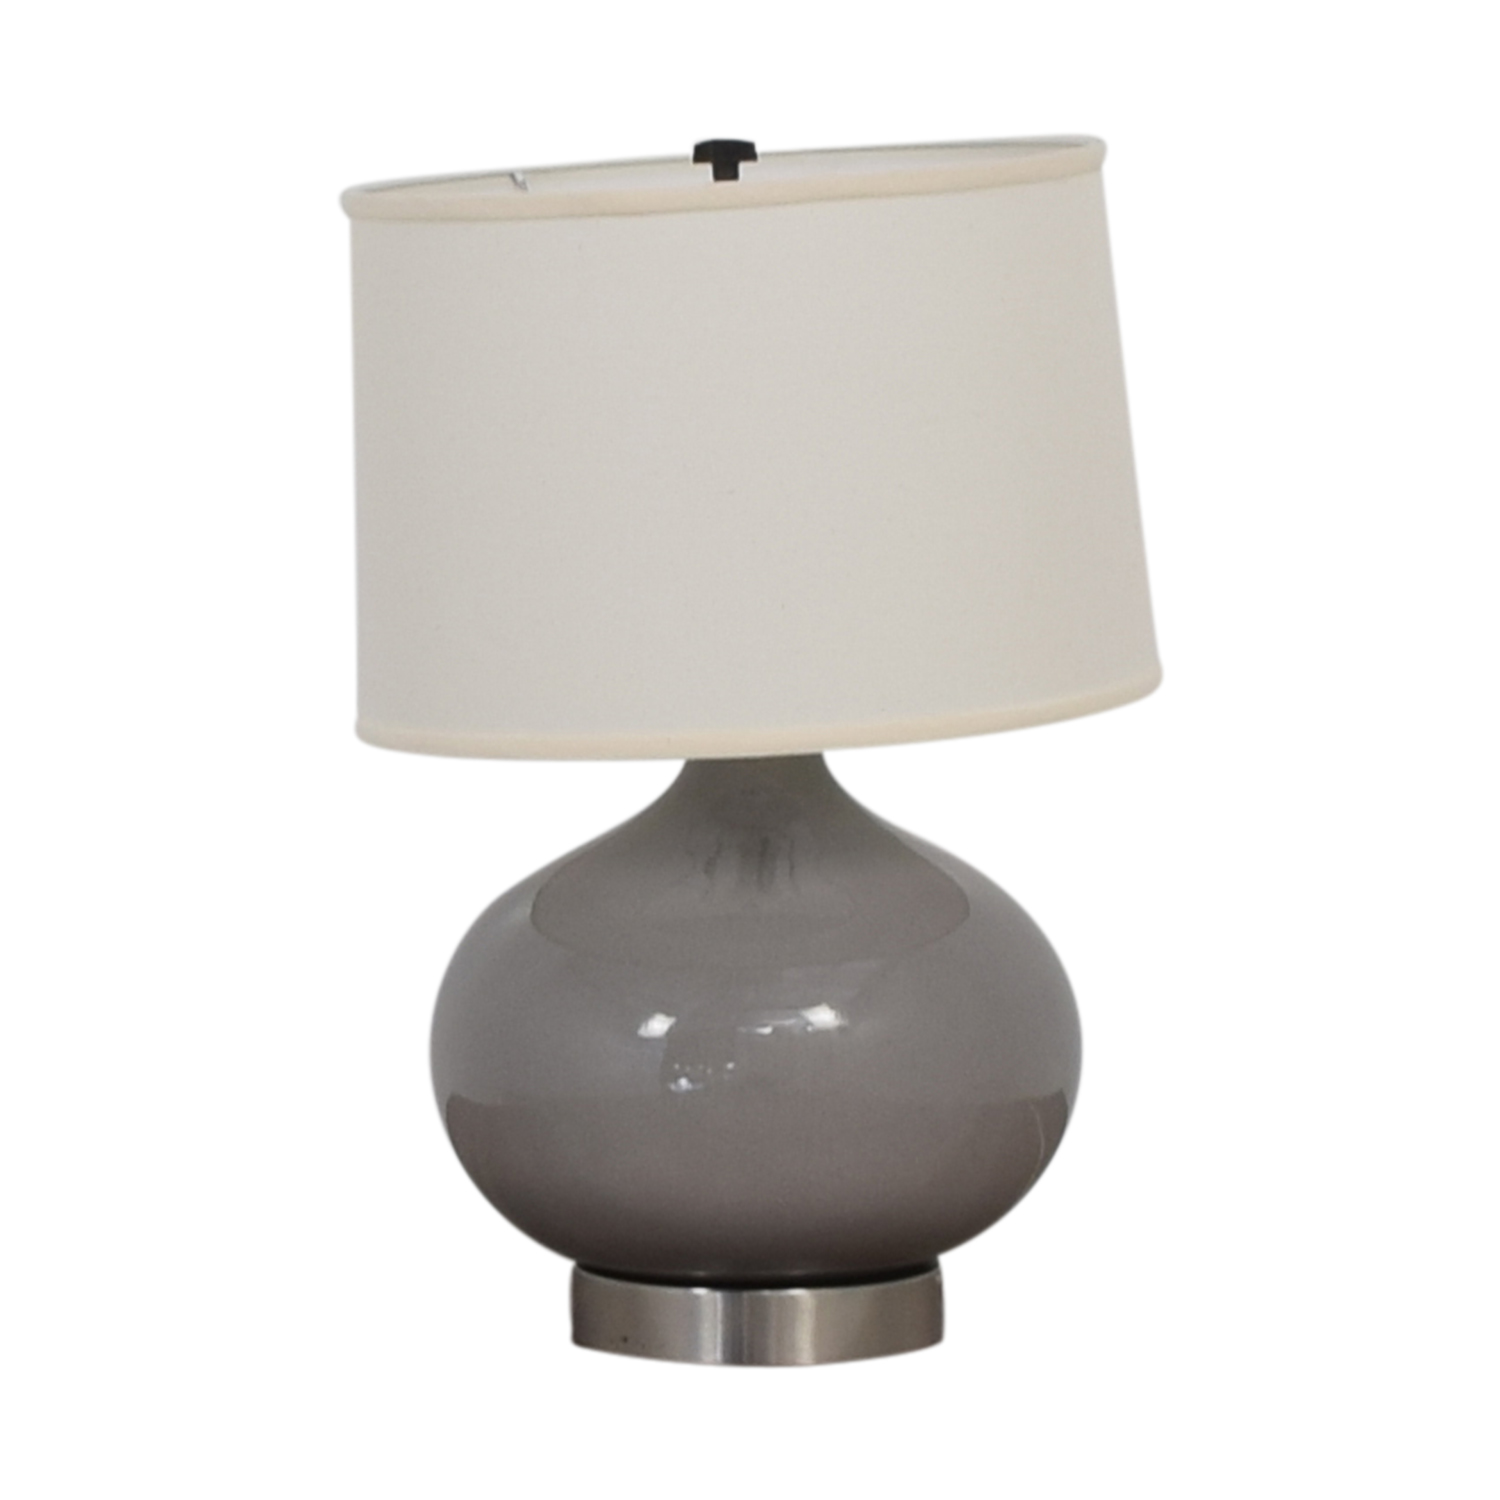 Crate & Barrel Spectrum Large Table Lamp with Oblong Ceramic and Acrylic Base sale